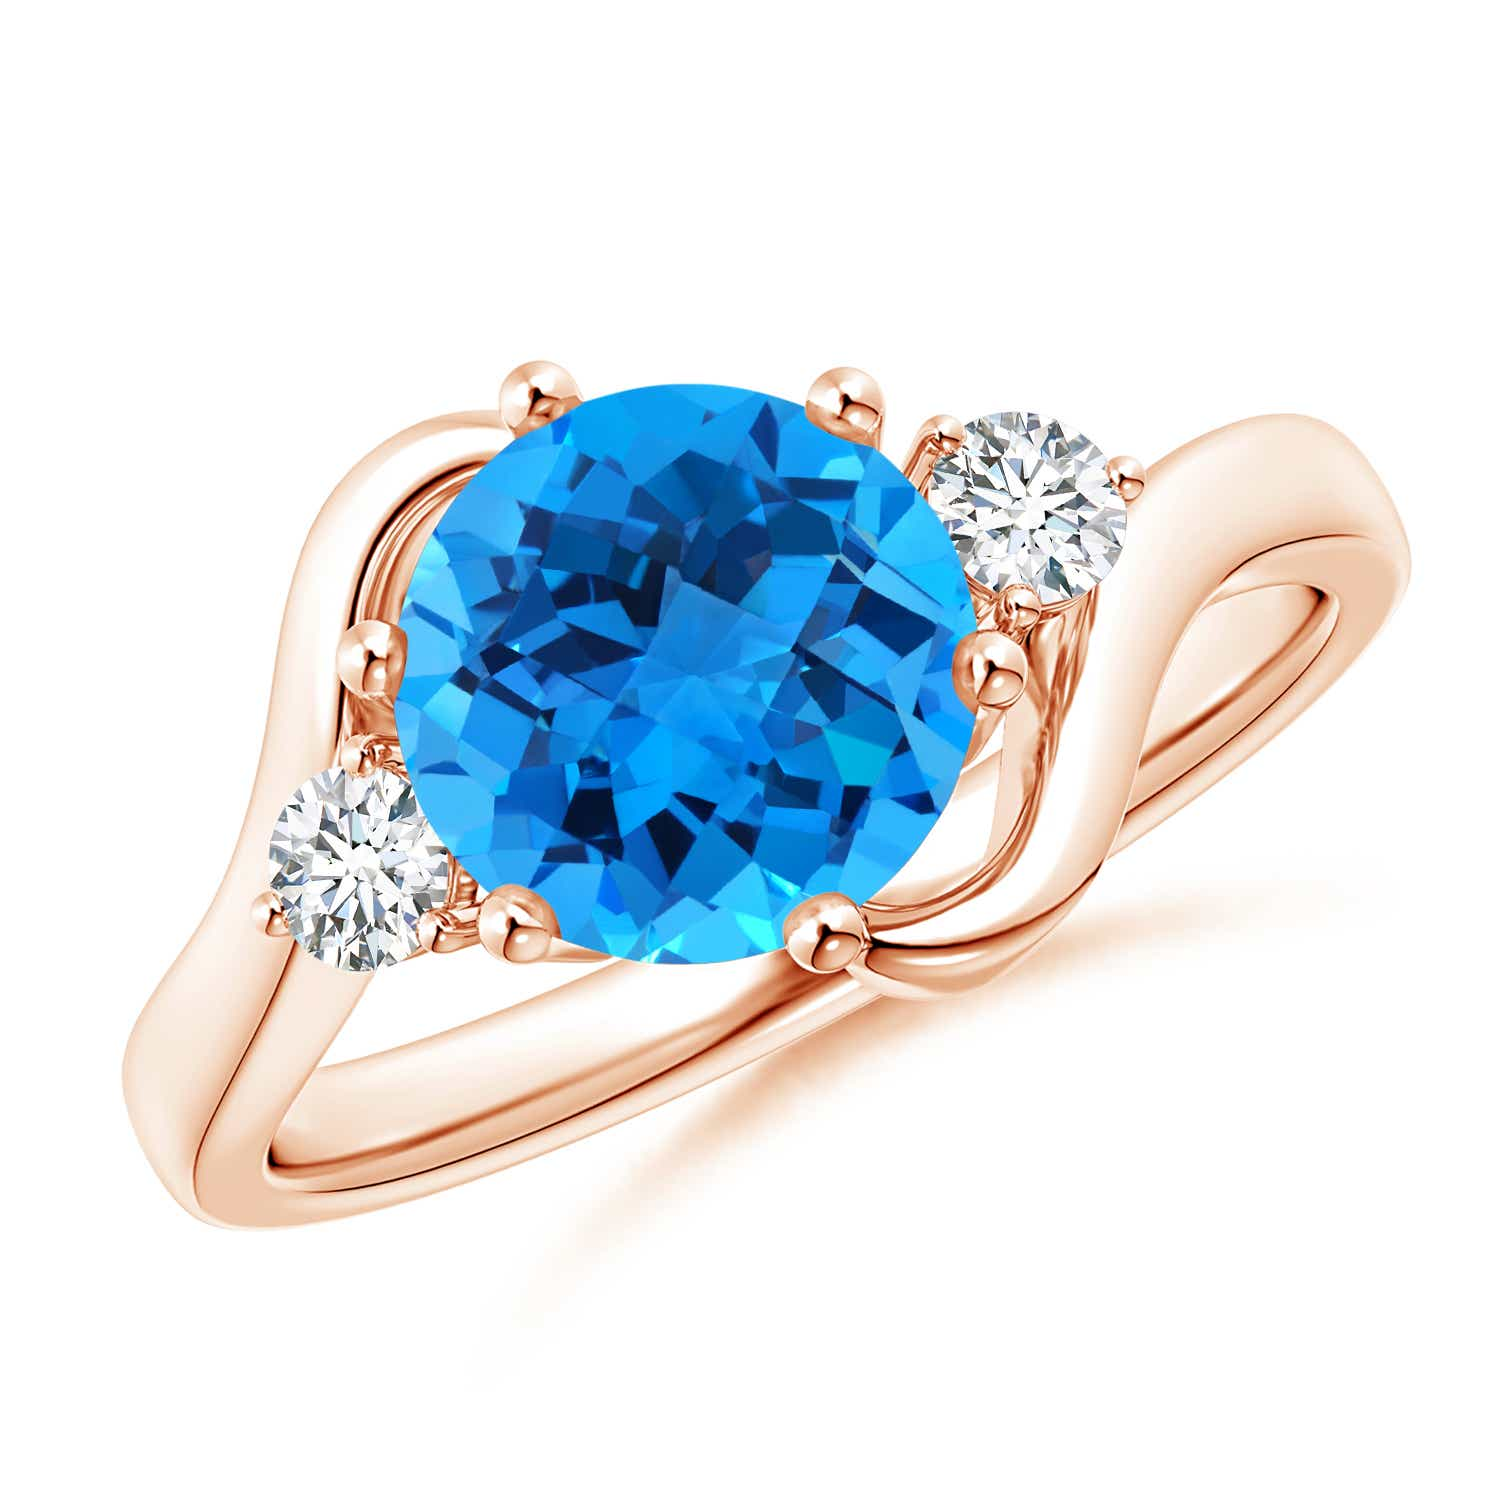 Angara Swiss Blue Topaz Engagement Ring With Diamond in Rose Gold cGD452